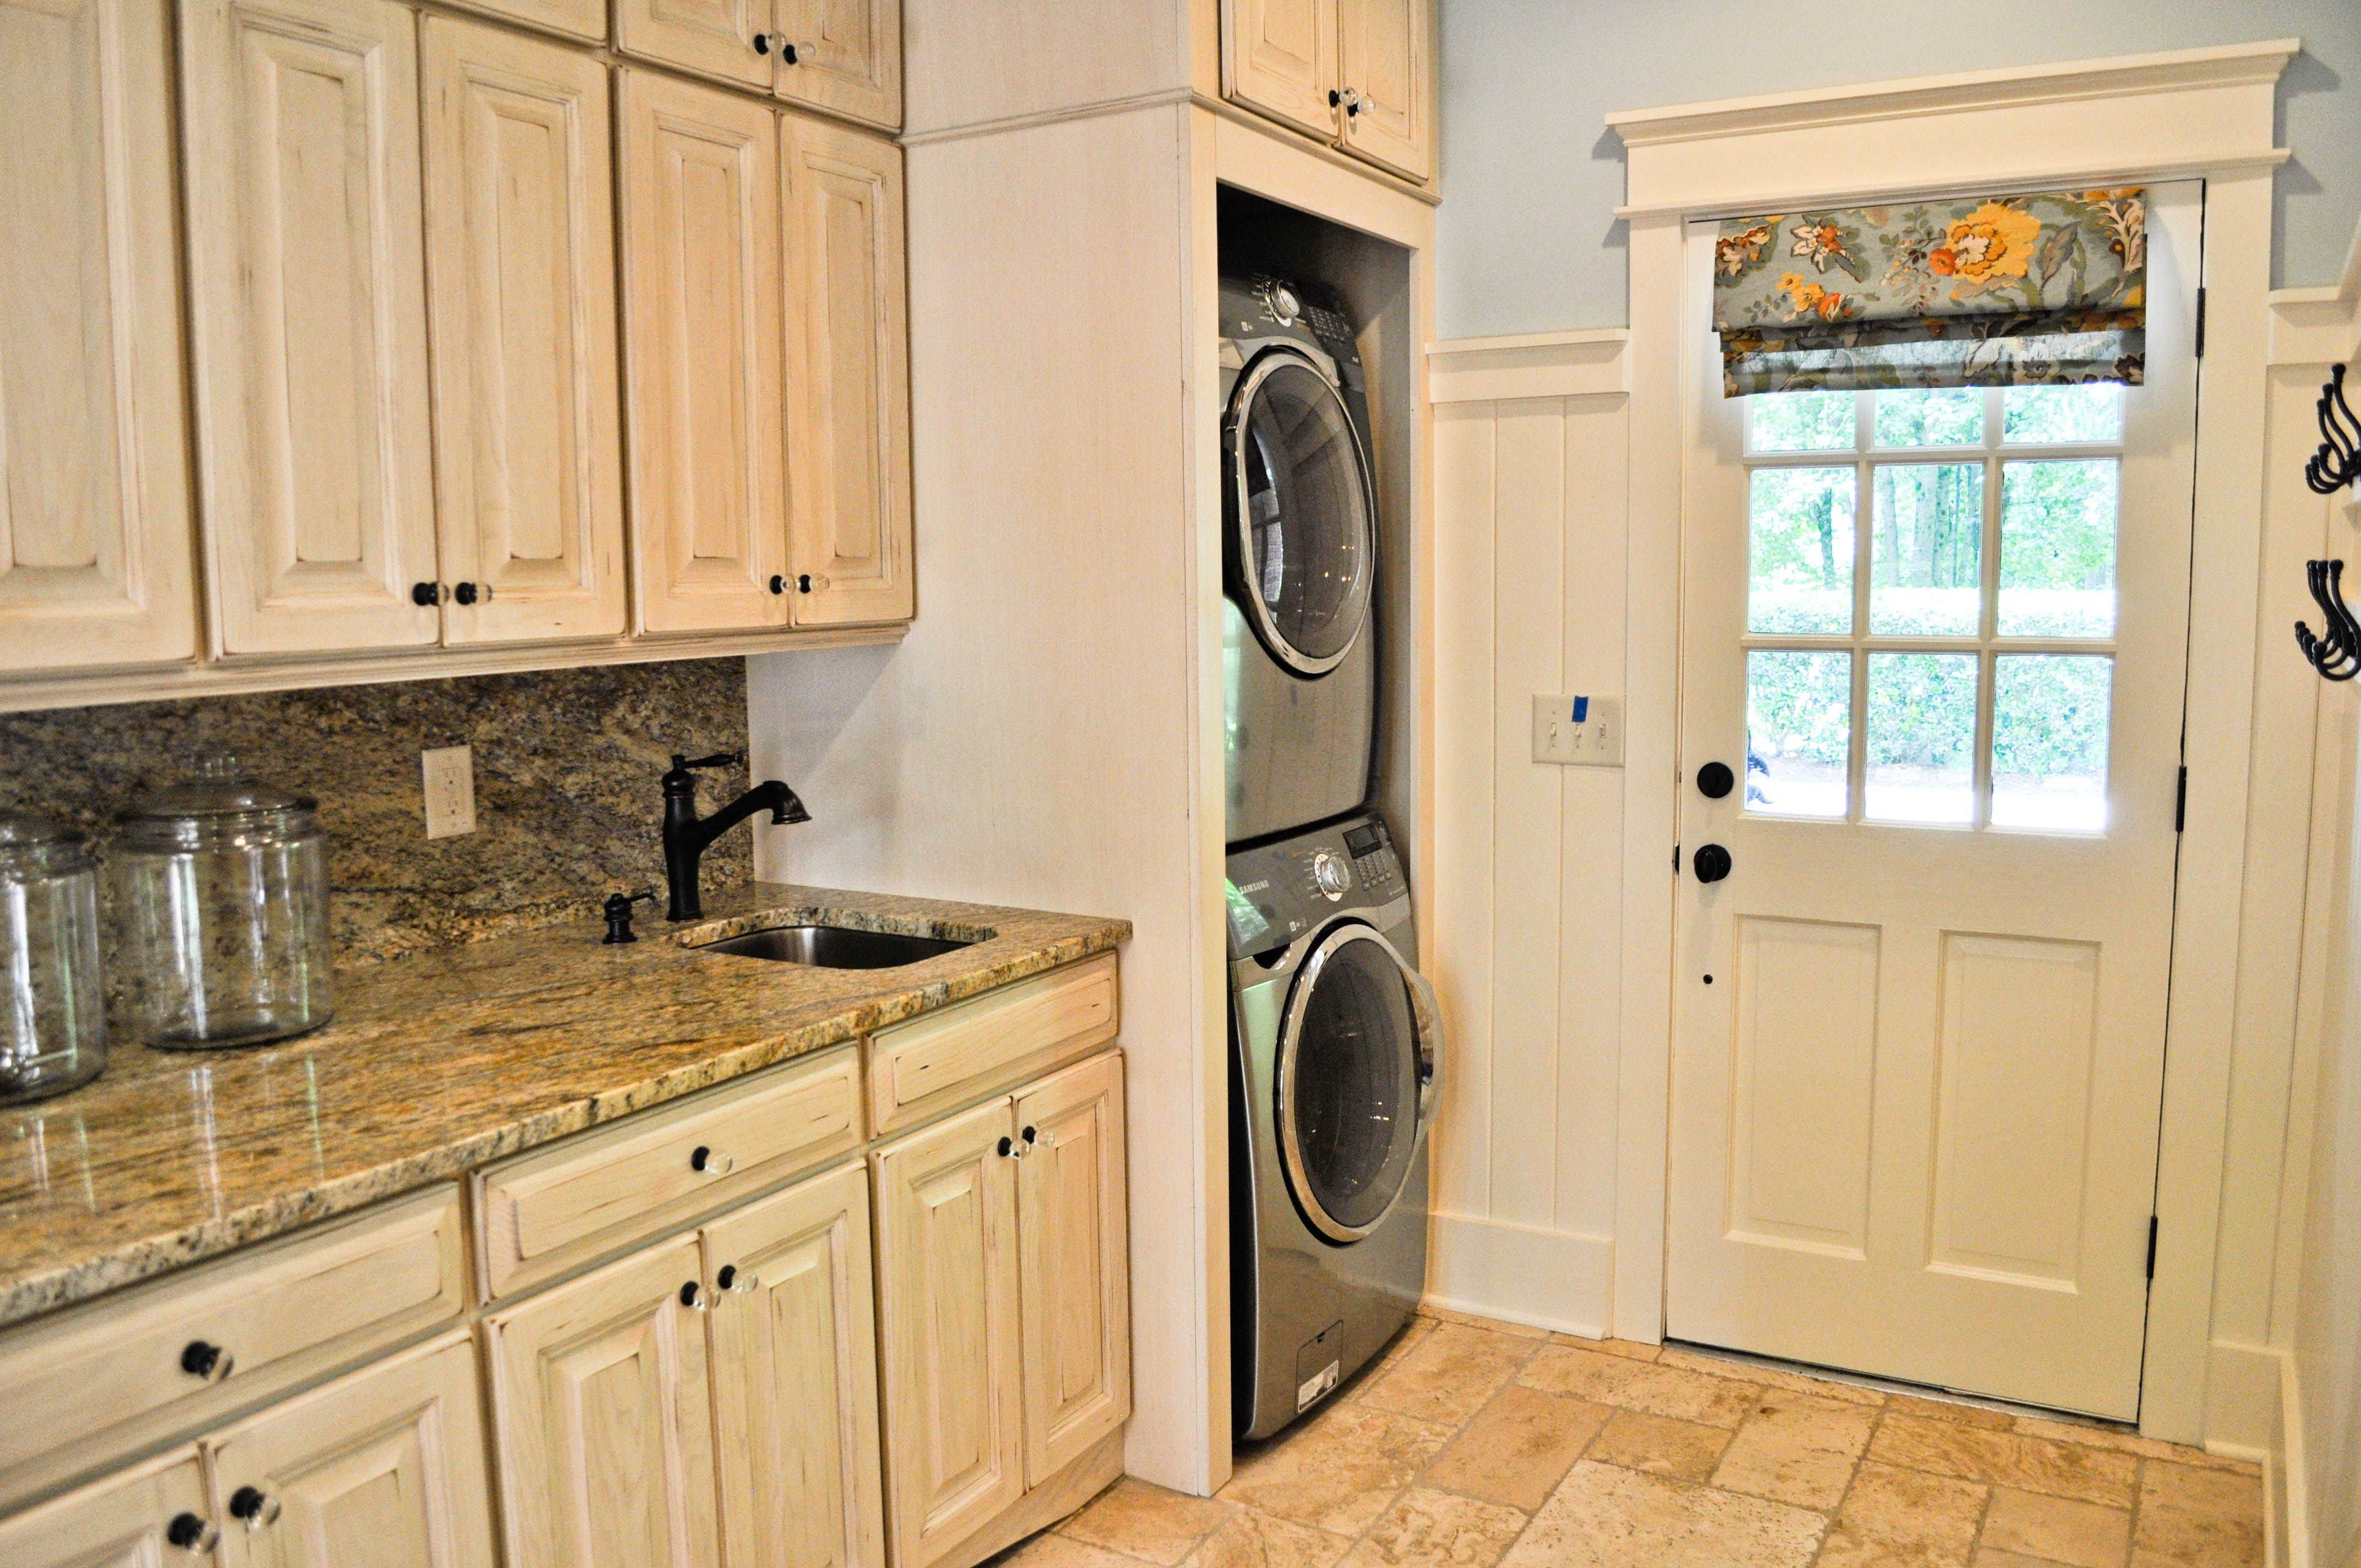 Mudroom laundry room remodel new house decorating ideas - Mudroom designs laundry room ...